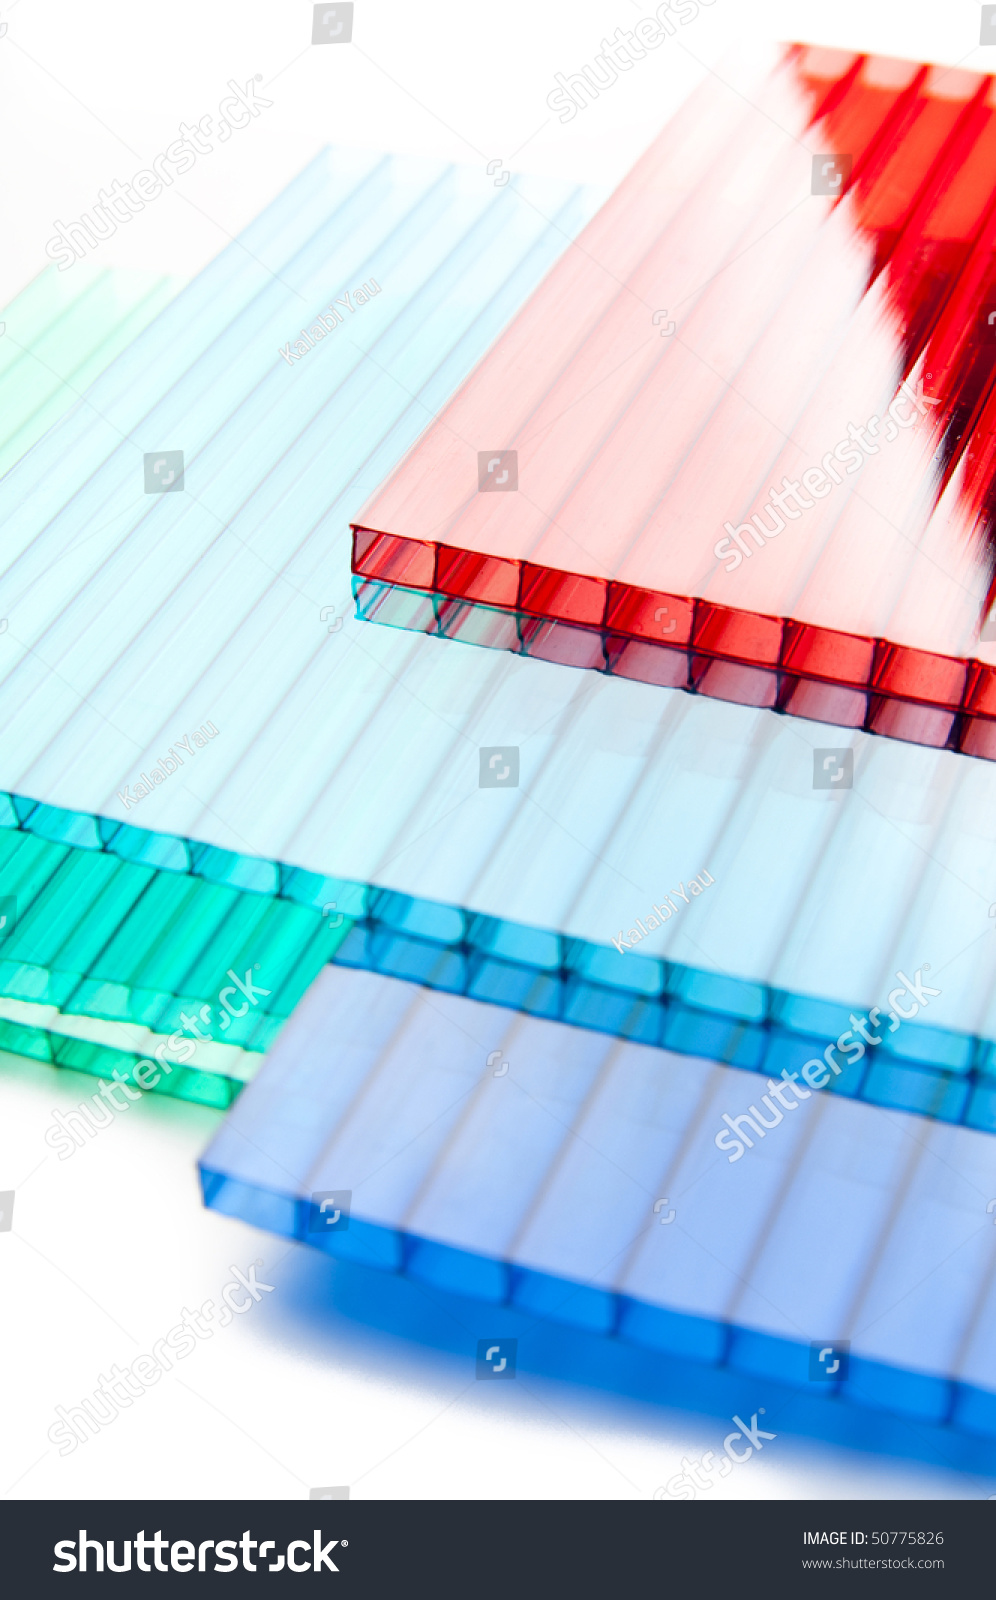 Color Polycarbonate Sheets Stock Photo (Royalty Free) 50775826 ...